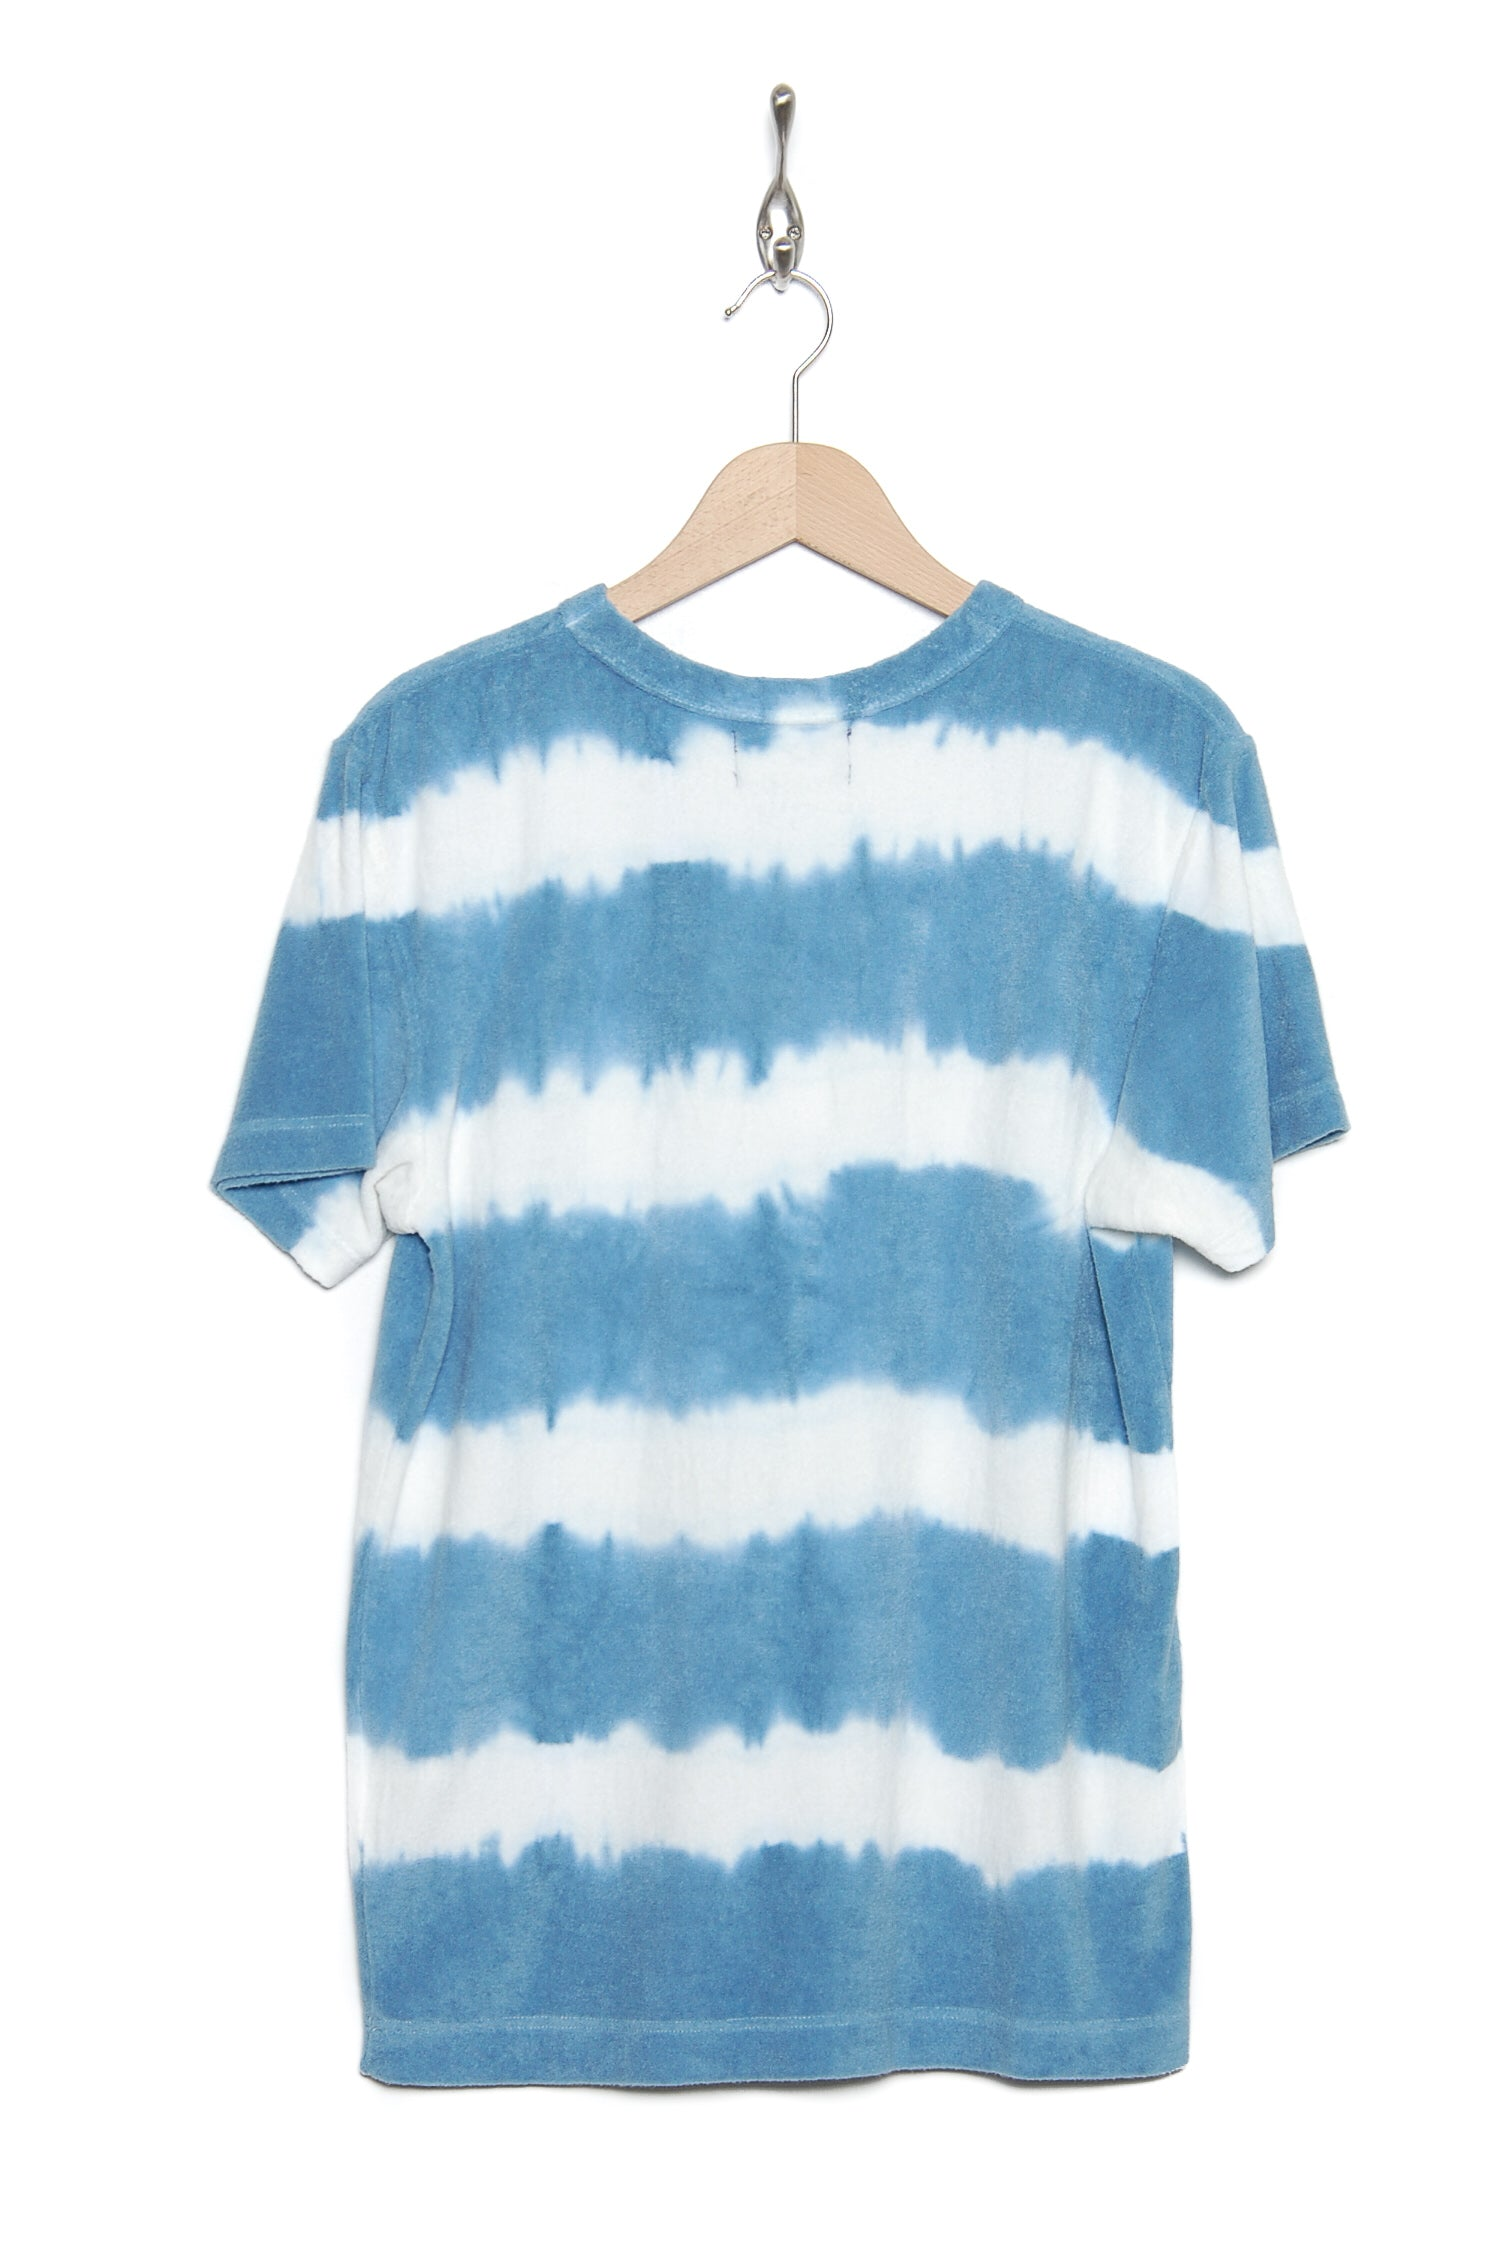 Howlin' Fons Hand Dyed Stripes paradise blue